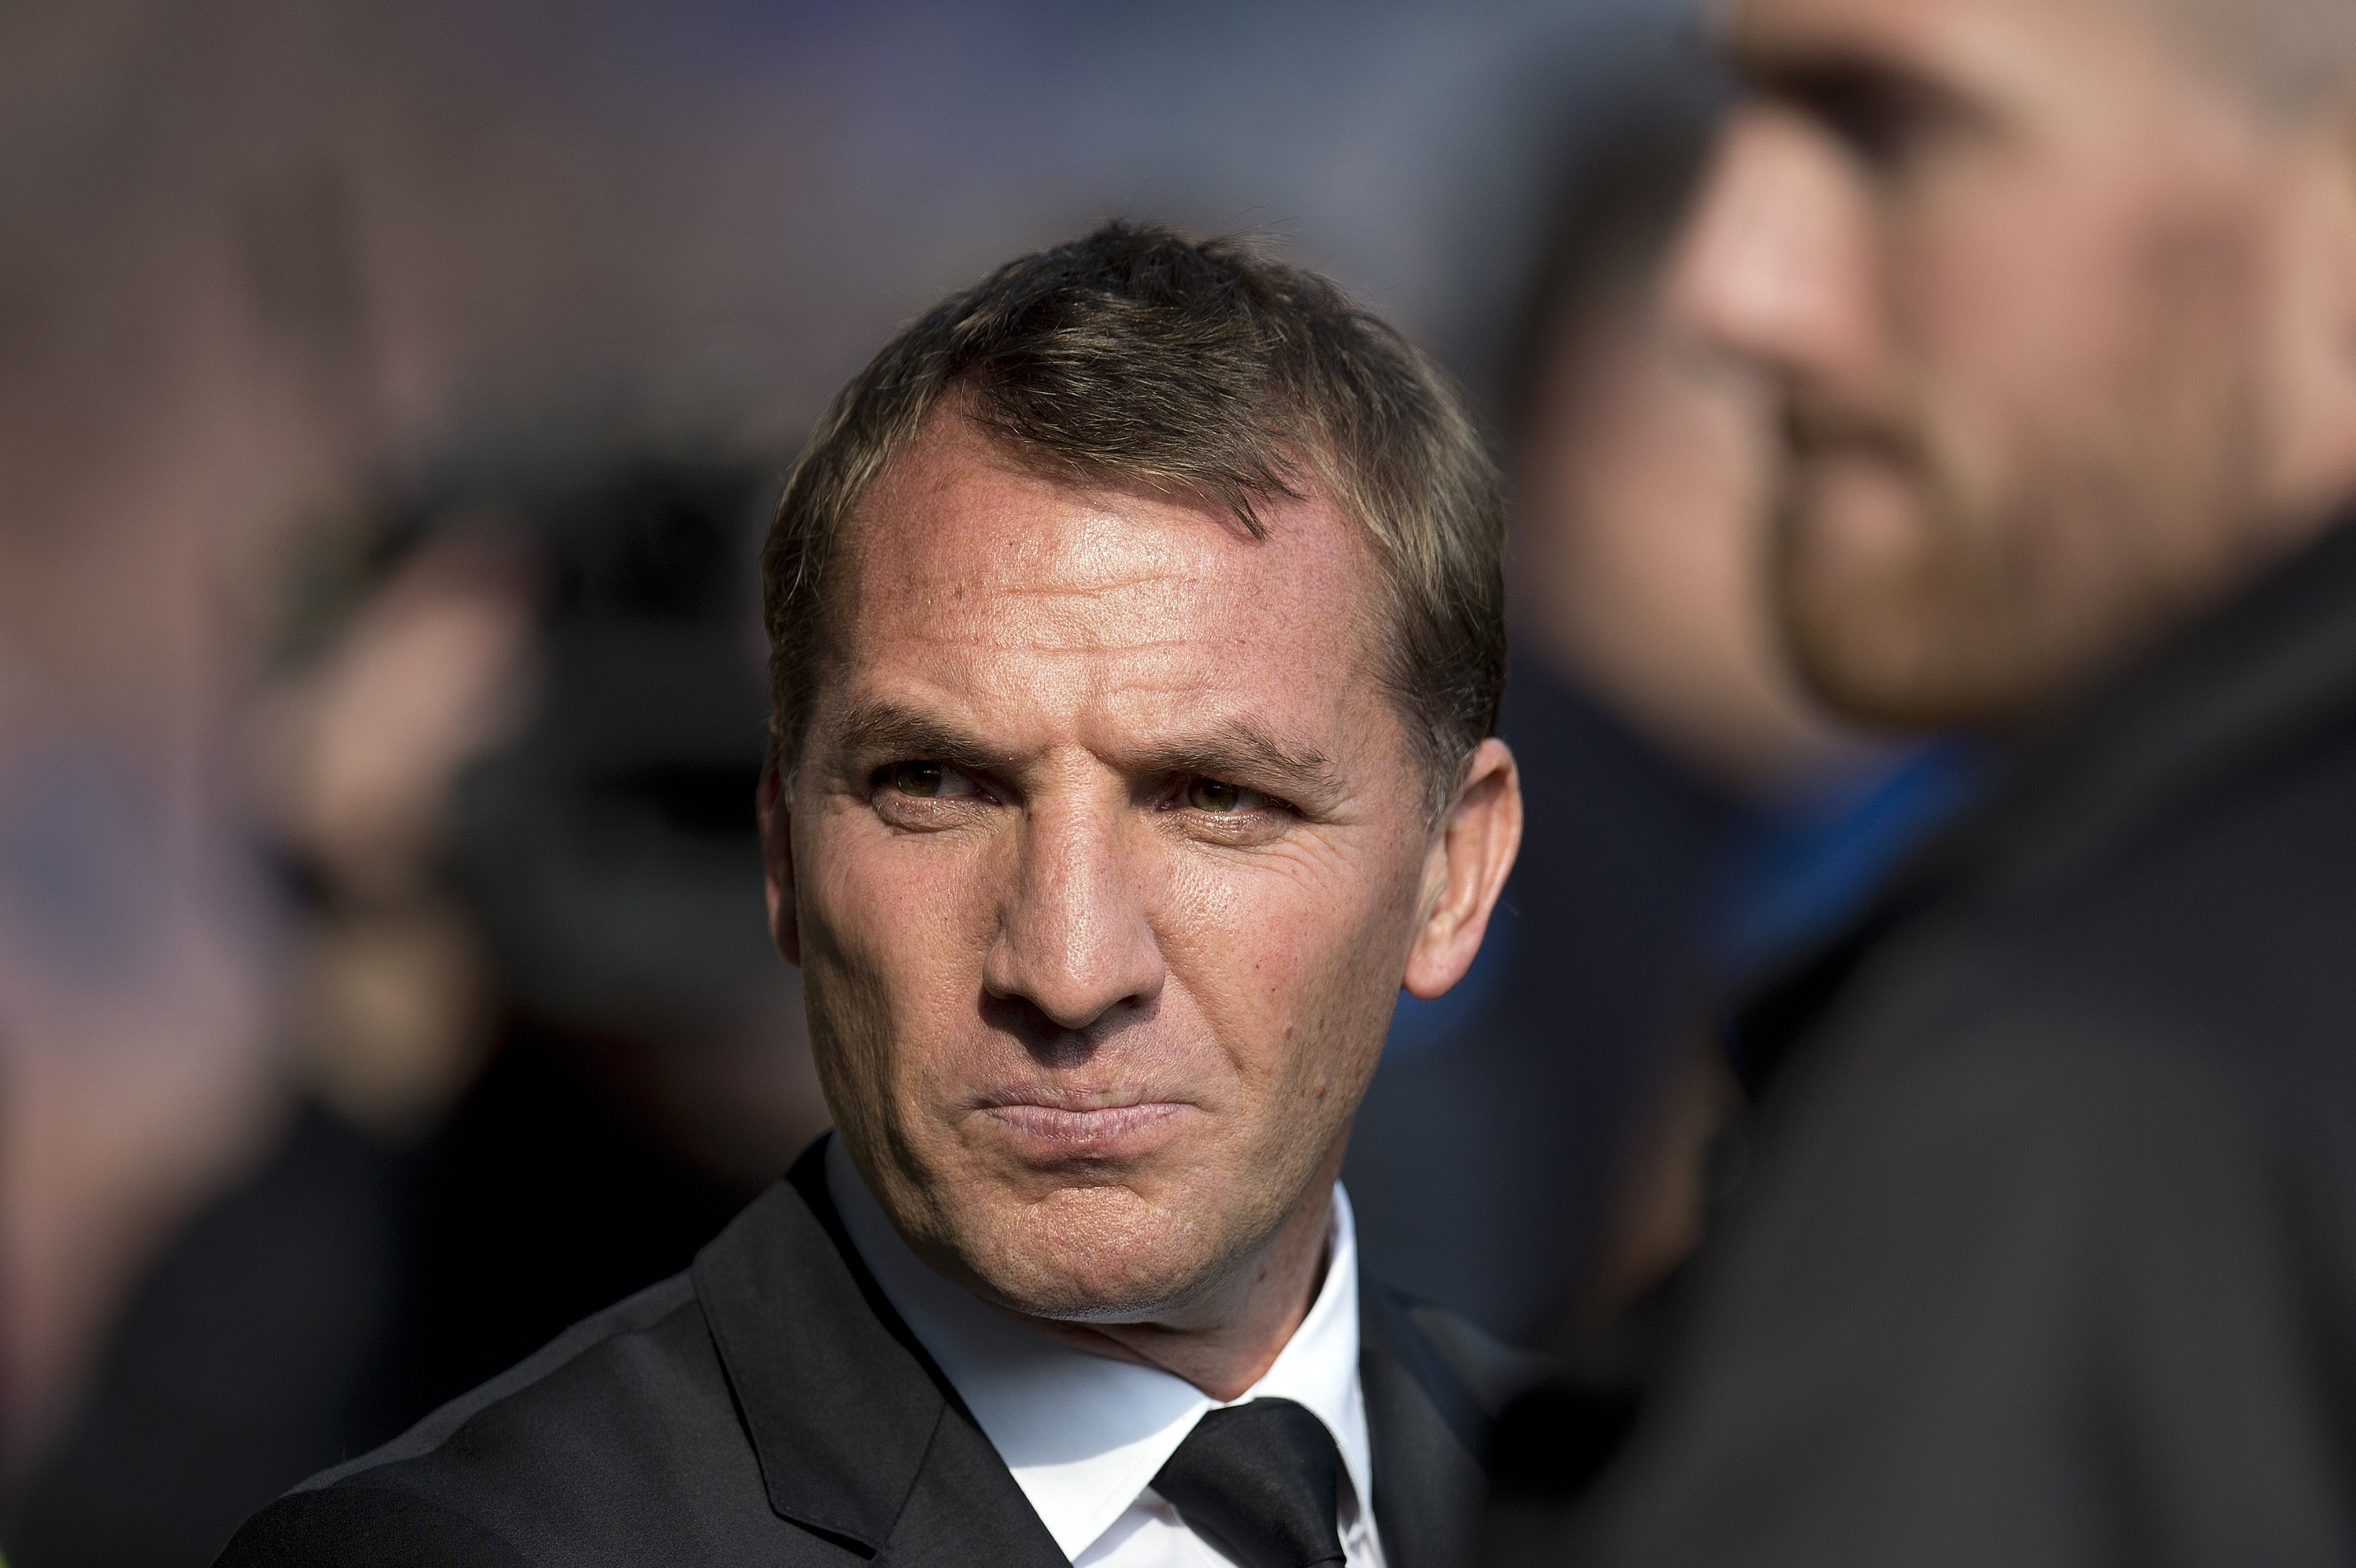 Swansea City boss Garry Monk could be replaced by former Liverpool manager Brendan Rodgers – report